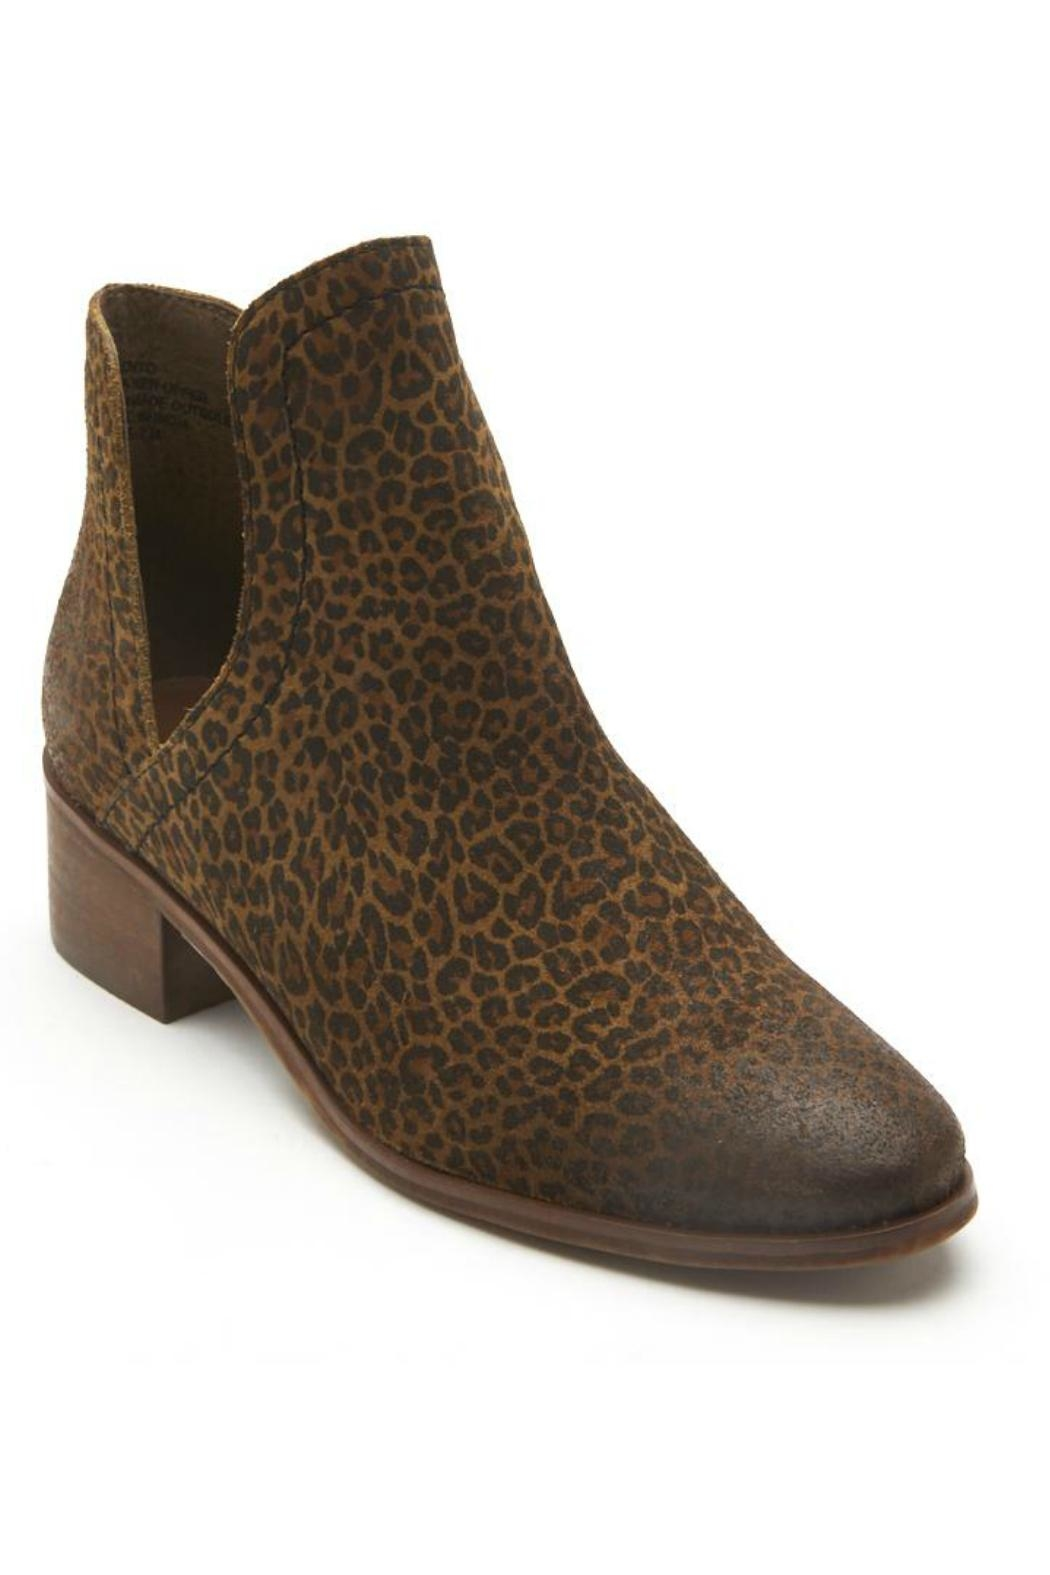 Coconuts by Matisse Leopard Bootie from